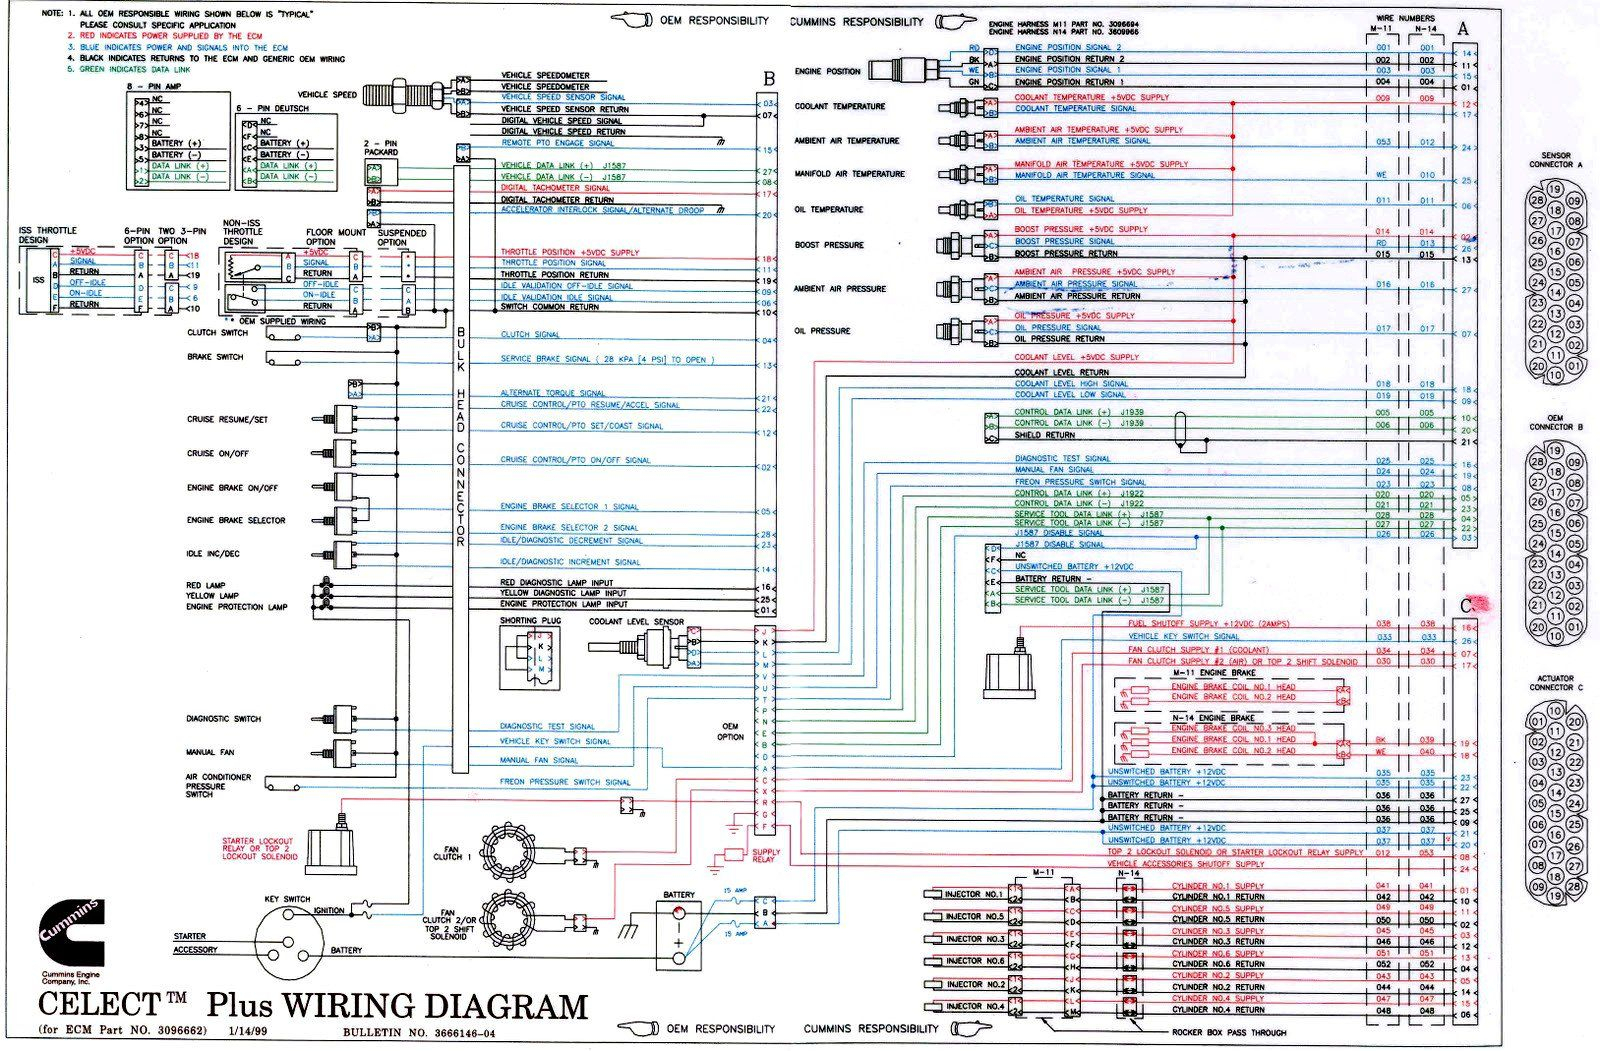 n14 cummins ecm wiring diagram download rh wholefoodsonabudget com cummins n14 celect ecm wiring diagram cummins n14 ecm wiring diagram pdf